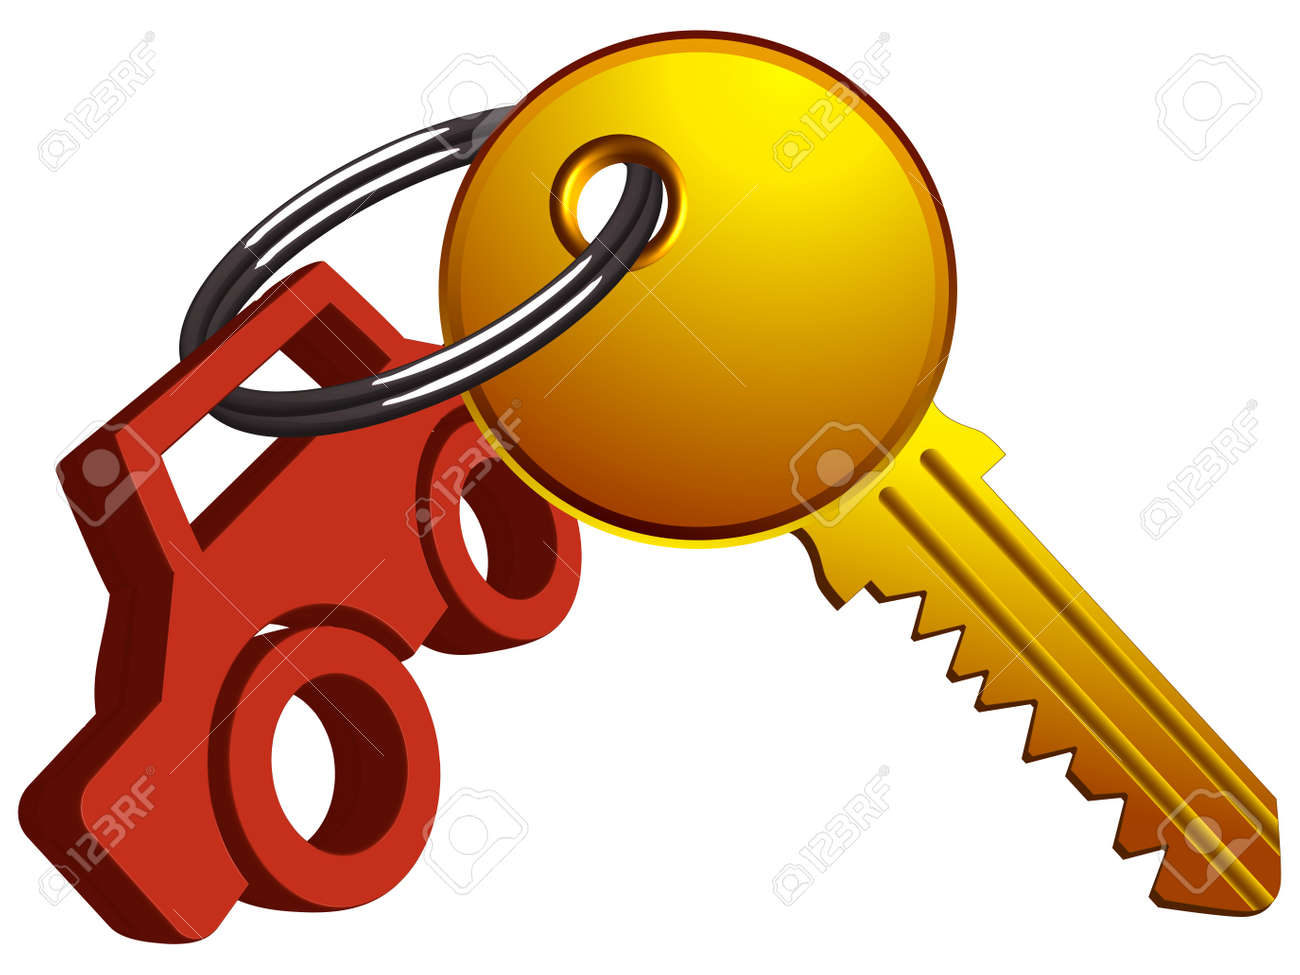 car and key on the same ring against white background, abstract vector art illustration Stock Vector - 13435113